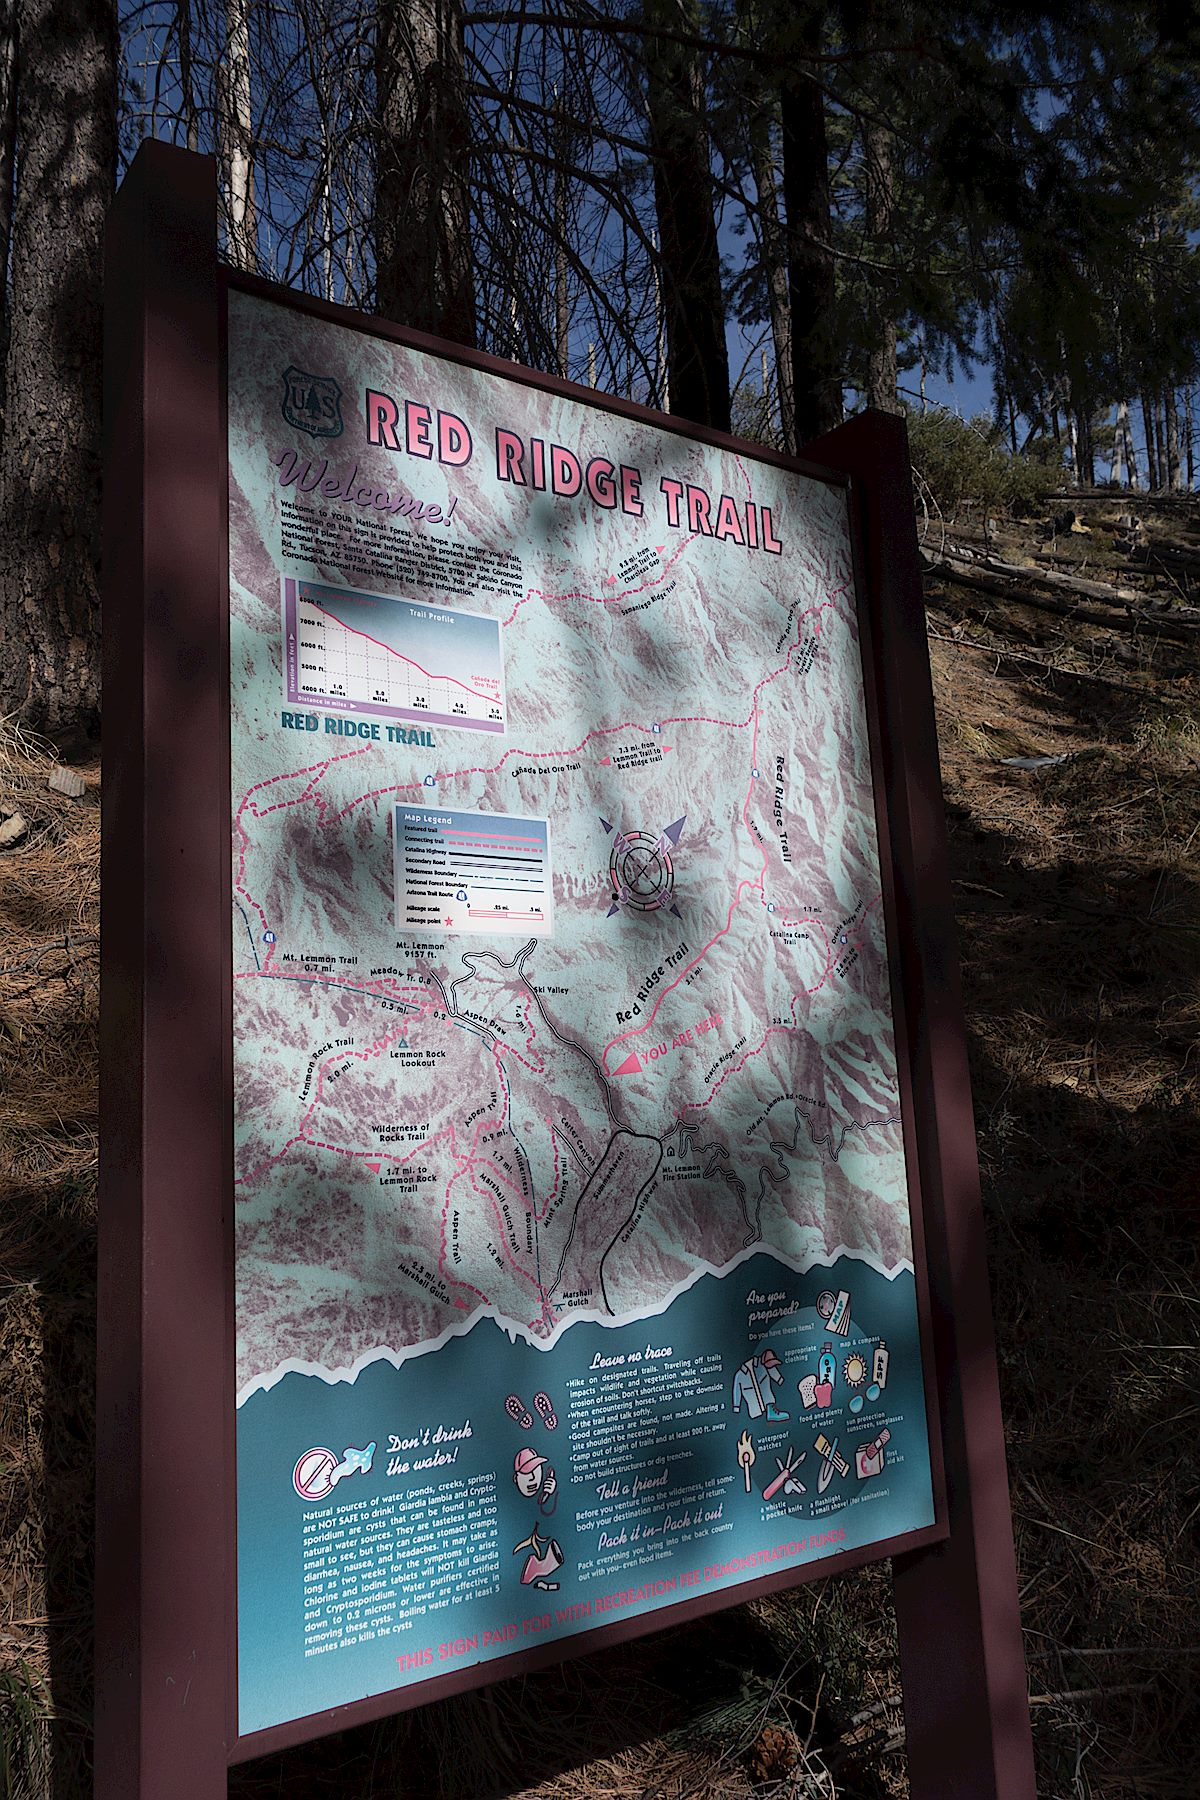 Red Ridge Trail Map sign. December 2013.